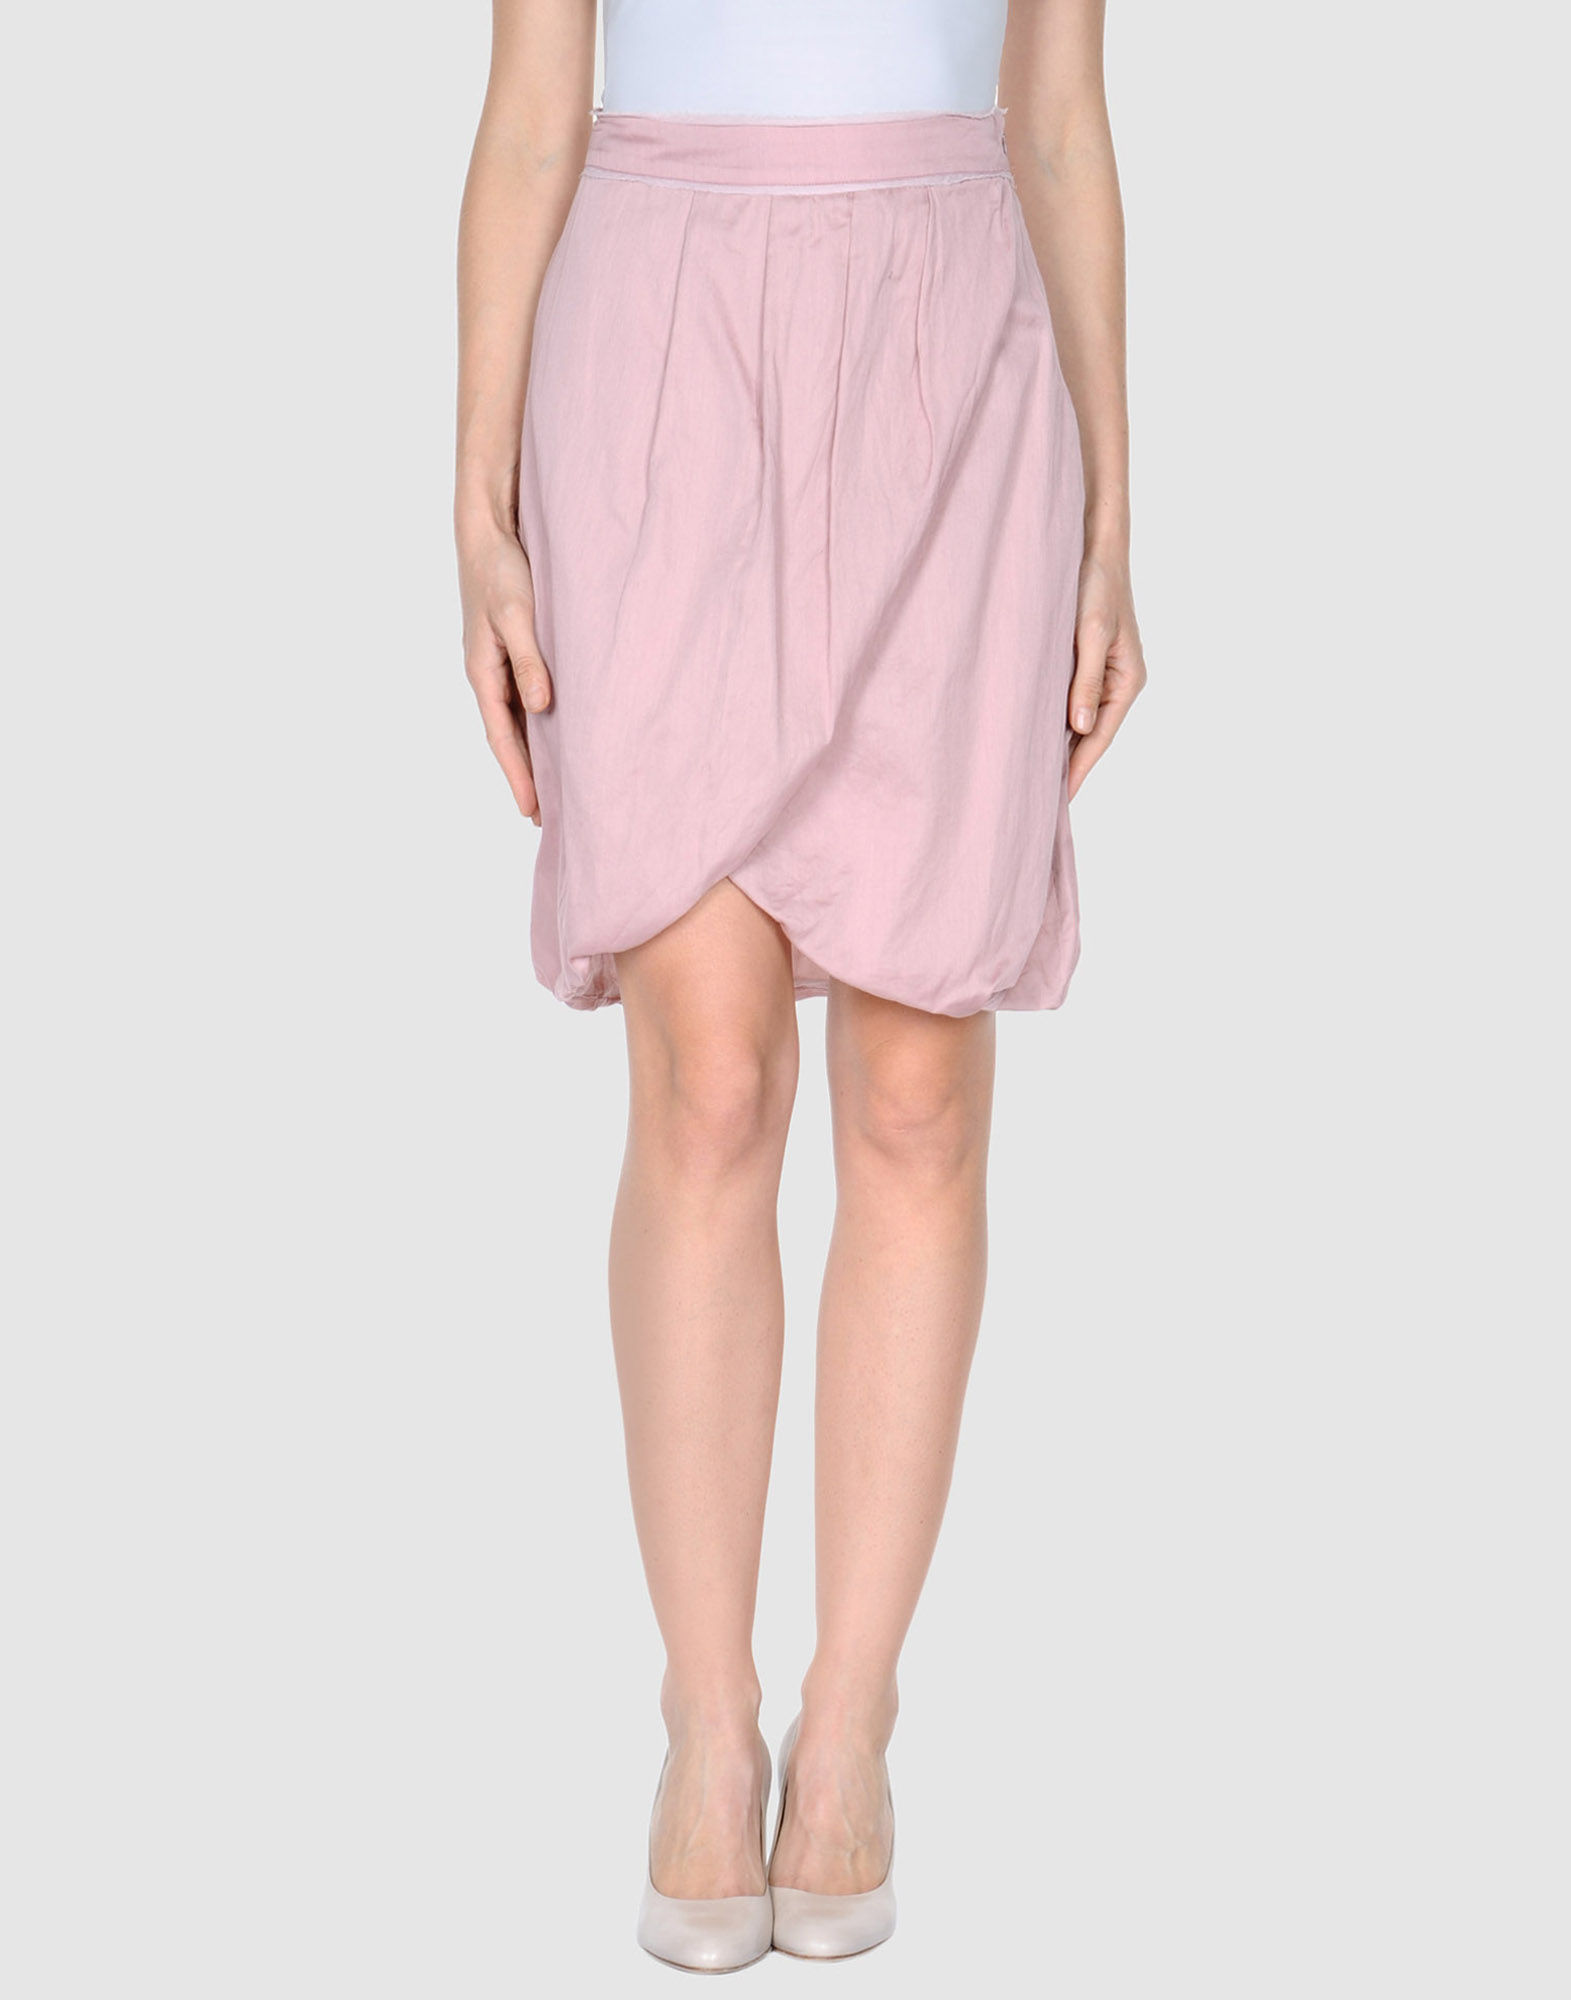 roberta scarpa knee length skirt in pink save 58 lyst